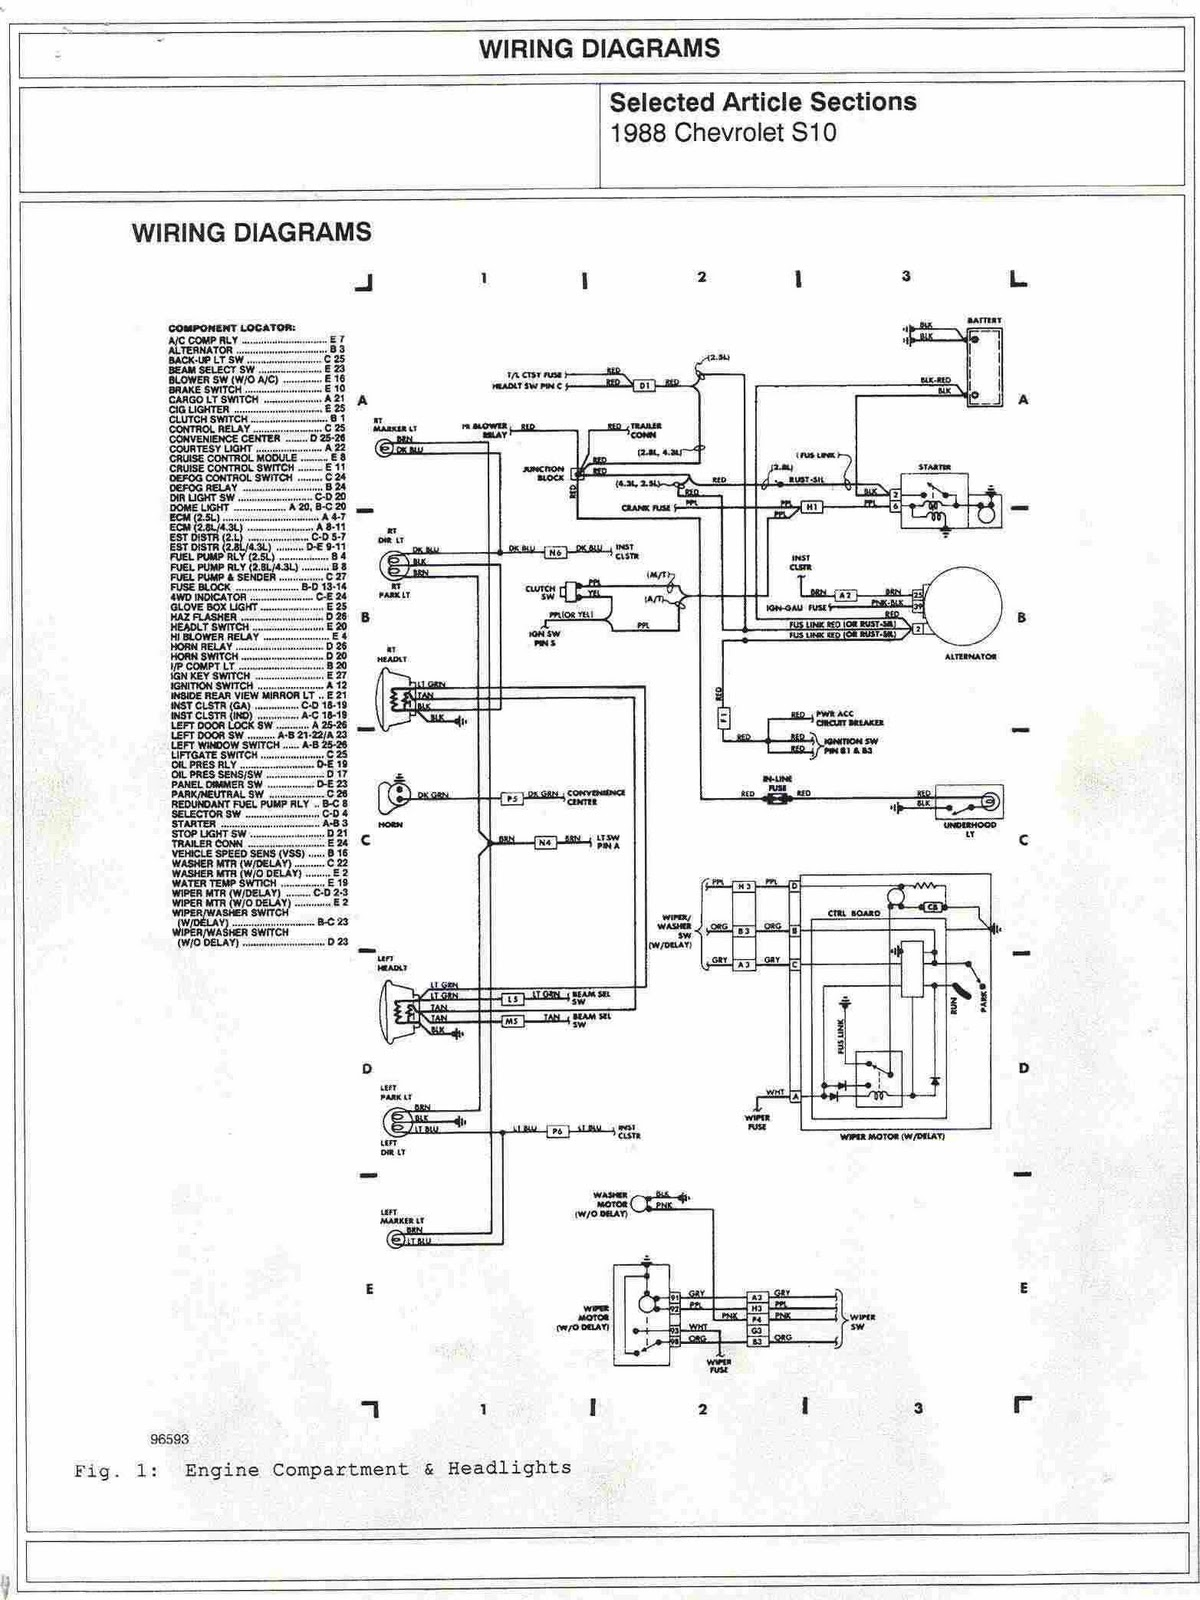 1988+Chevrolet+S10+Engine+Compartment+and+Headlights+Wiring+Diagrams 95 s10 wiring diagram 95 tahoe wiring diagram \u2022 wiring diagrams chevy s10 wiring diagram at suagrazia.org